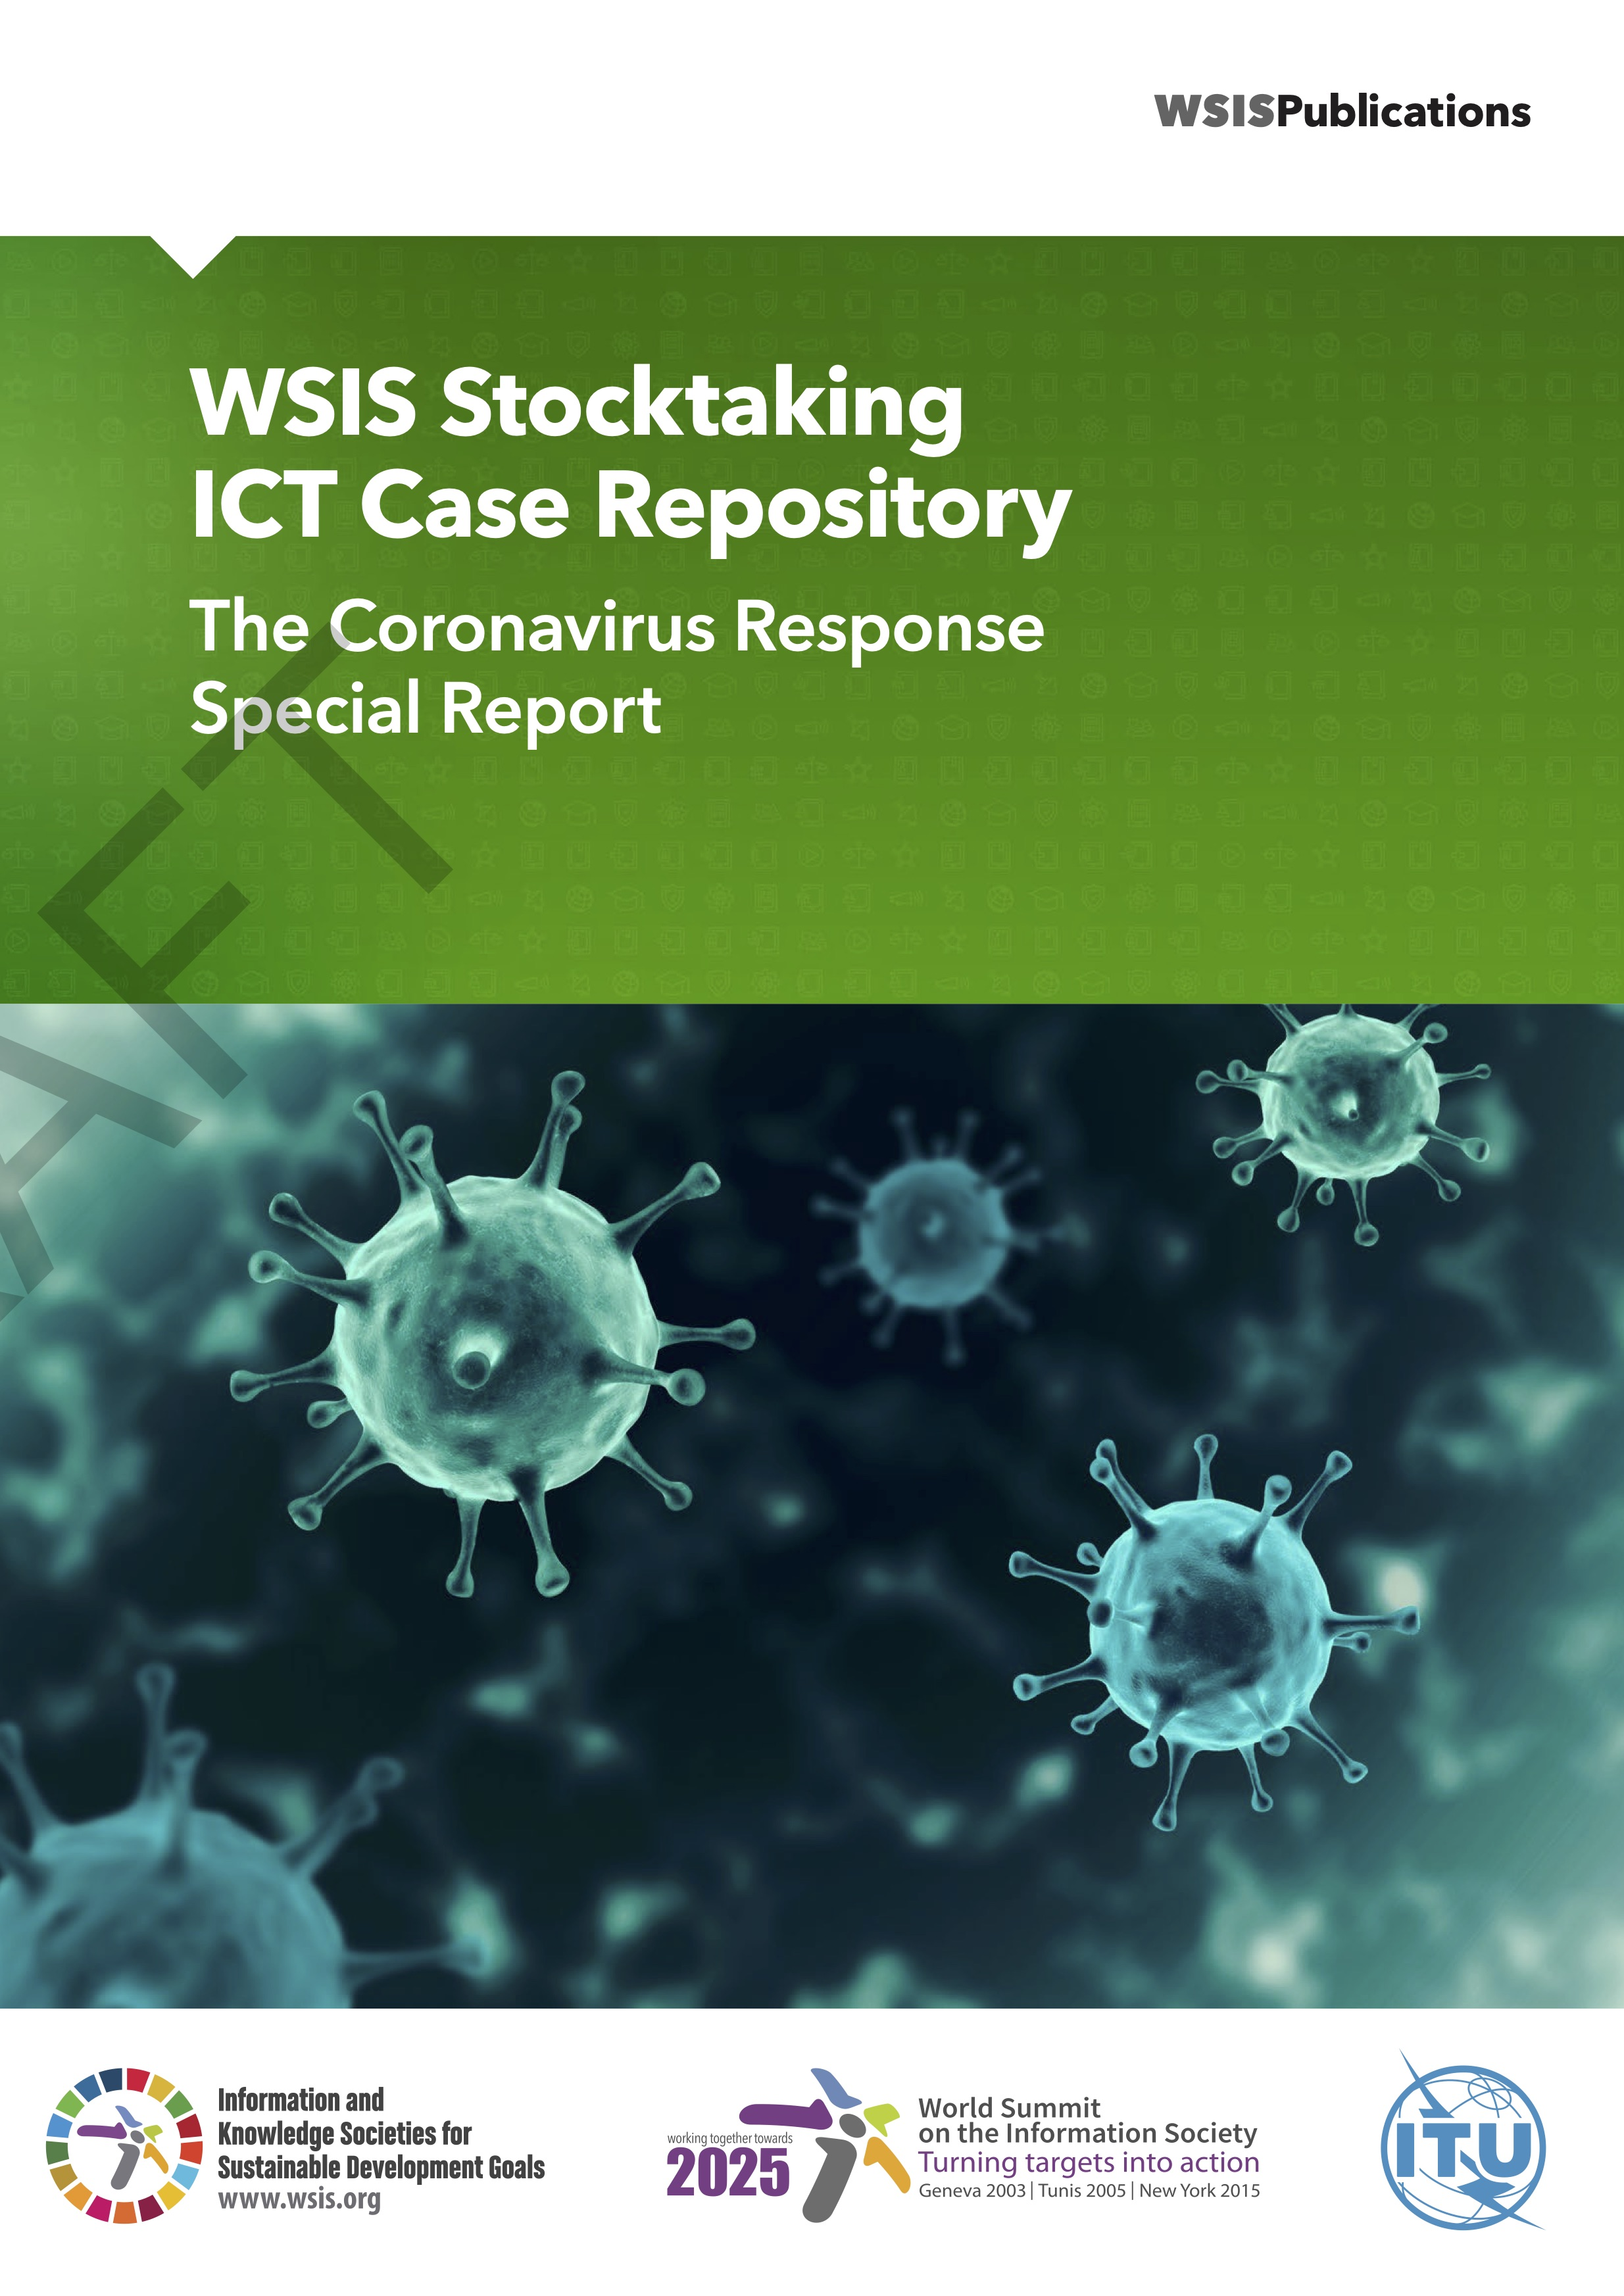 WSIS Stocktaking ICT Case Repository: The Coronavirus Response Special Report